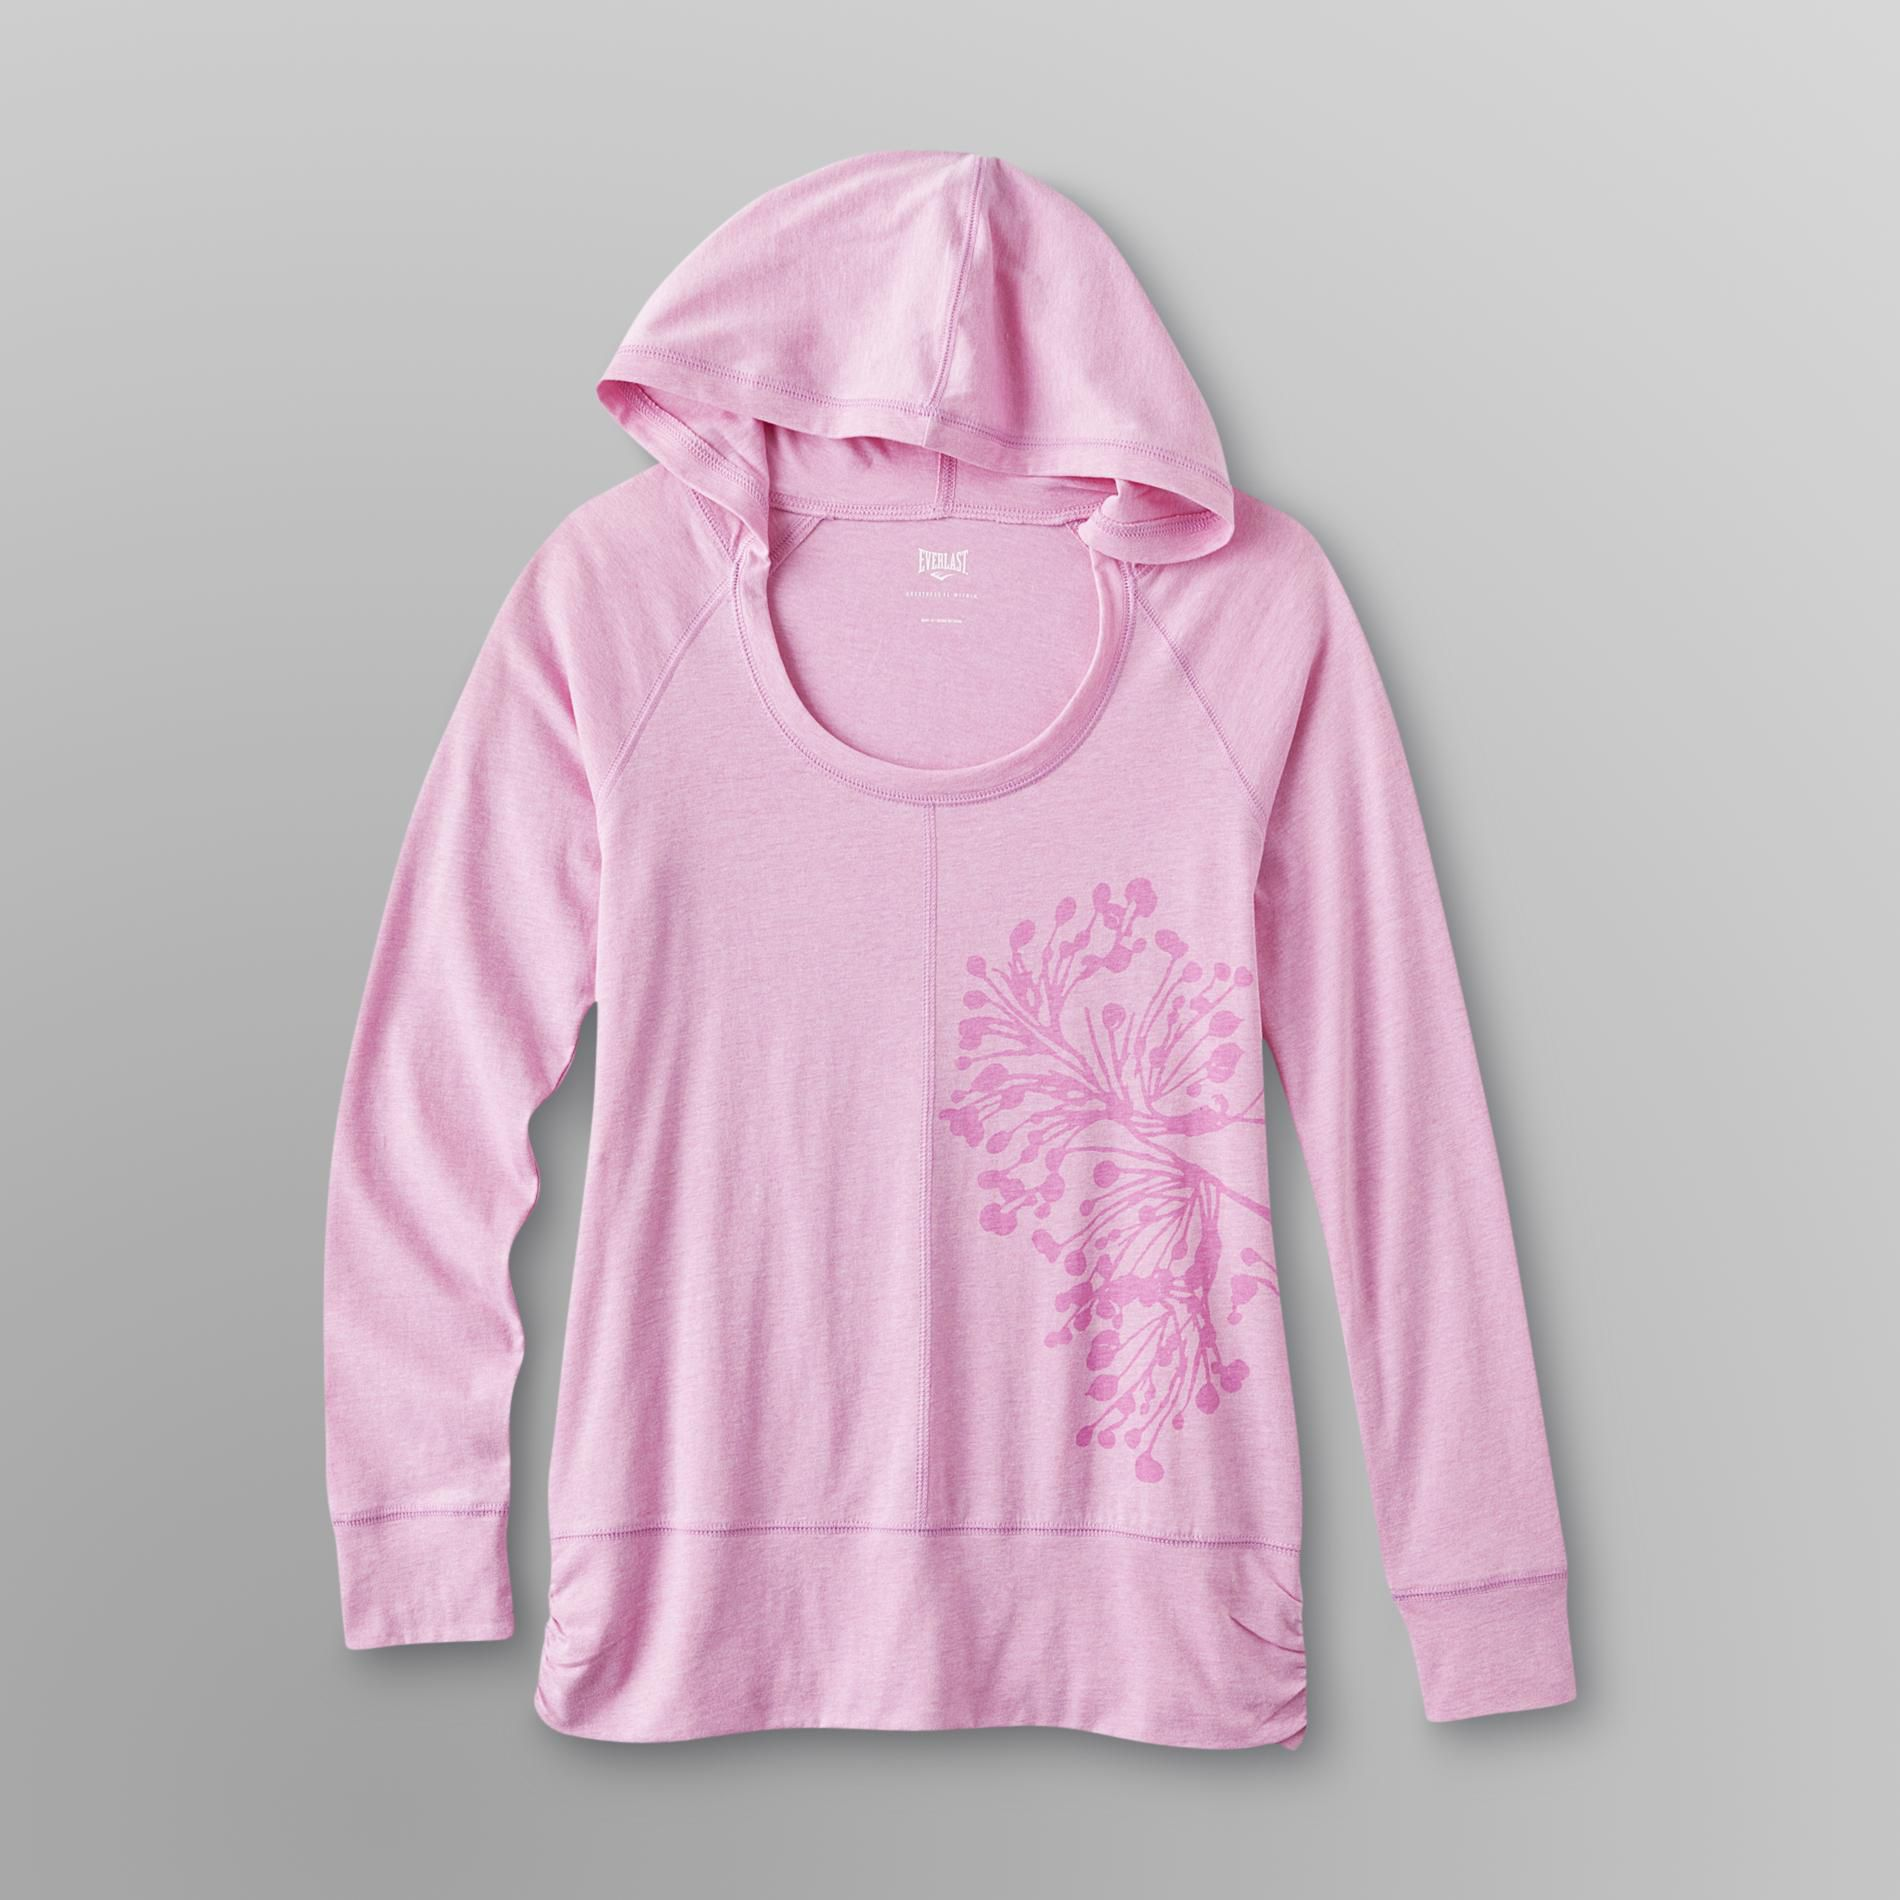 Women's Graphic Hooded T-Shirt